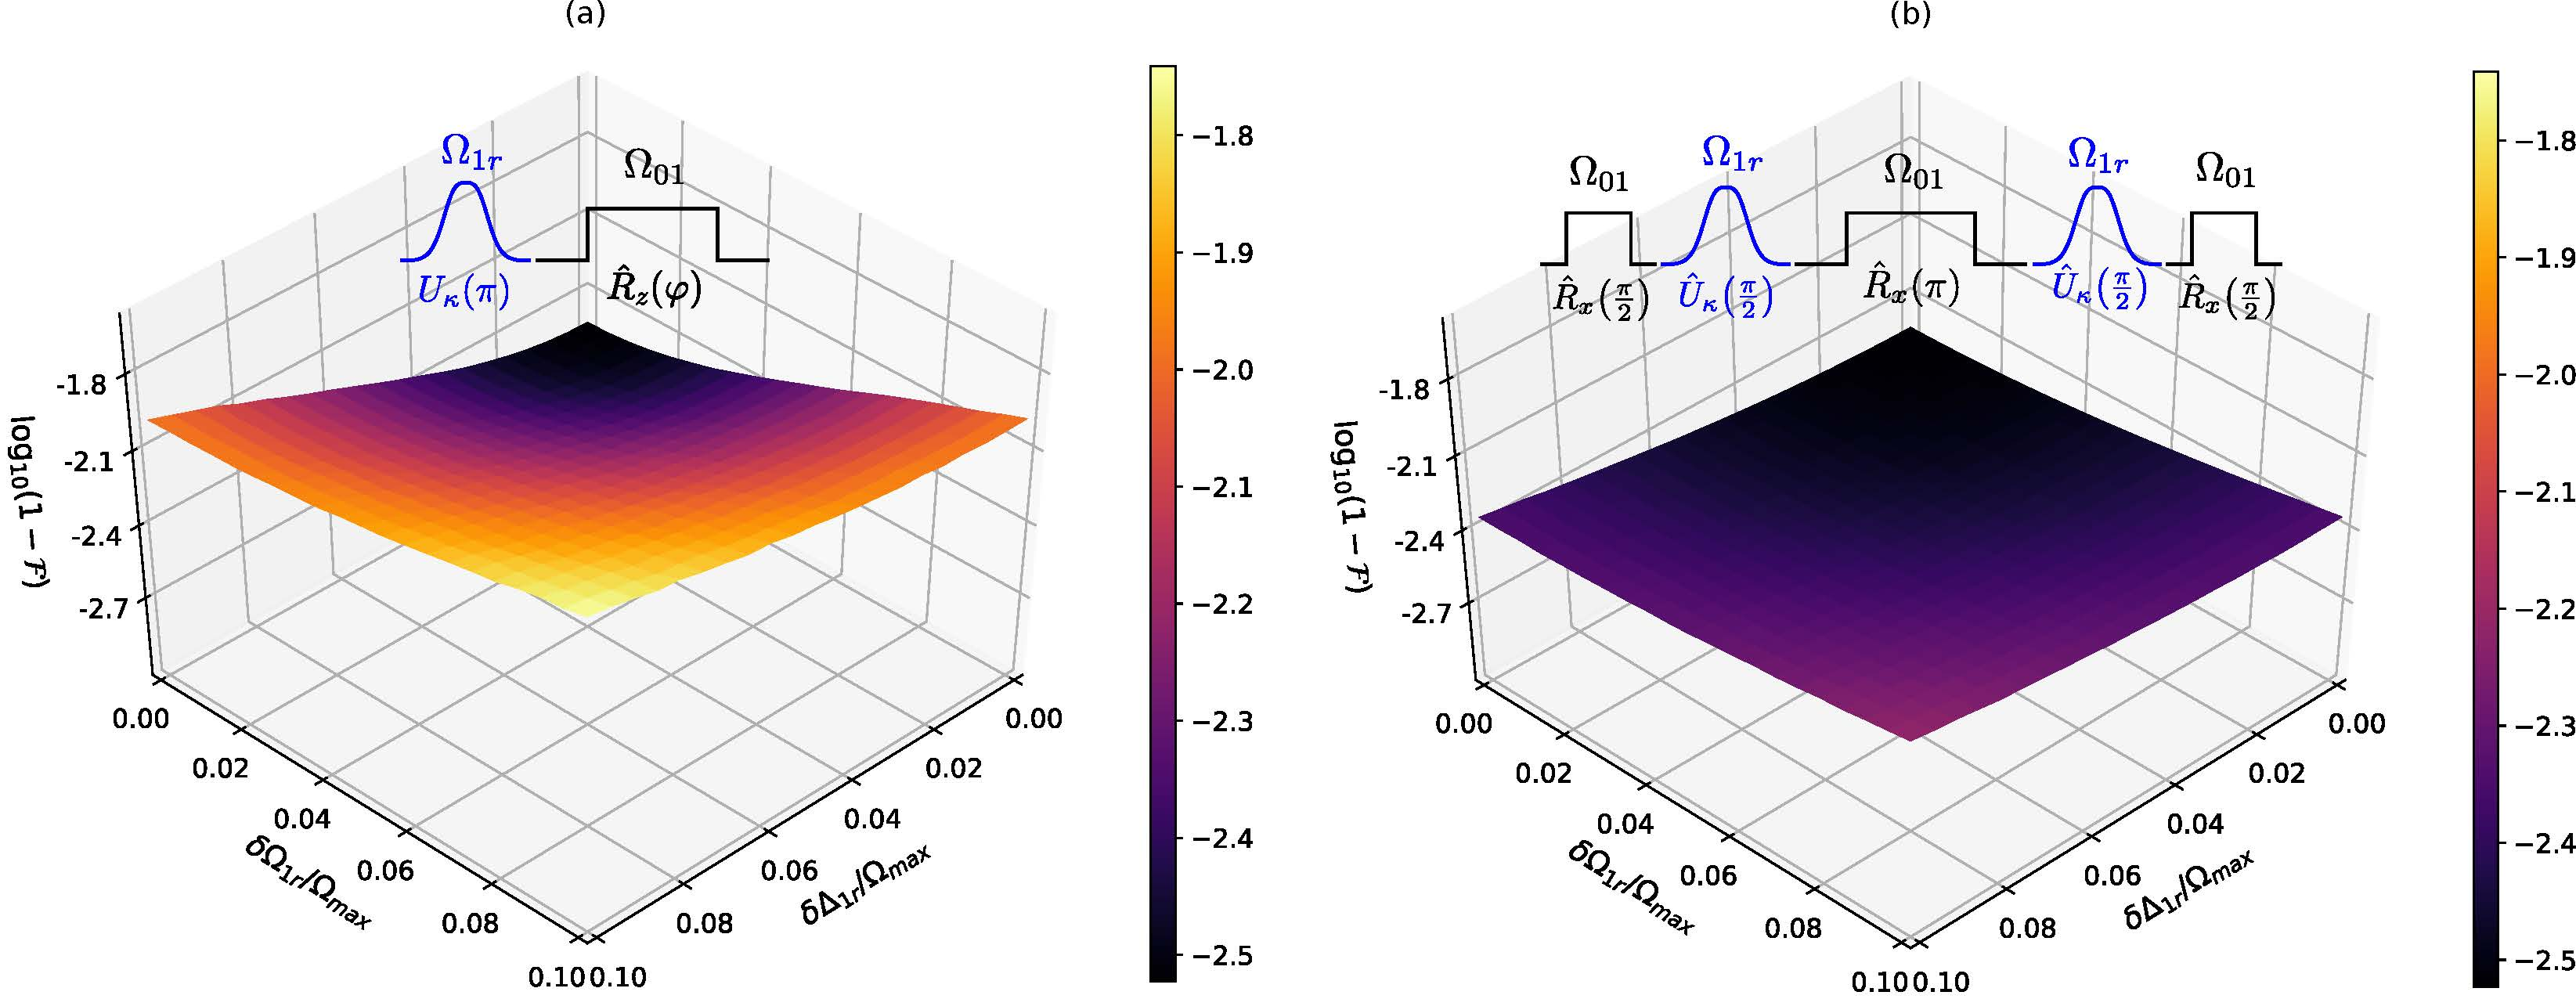 Diagram for Adiabatic rapid passage facilitates robust entangling gates for neutral atoms article